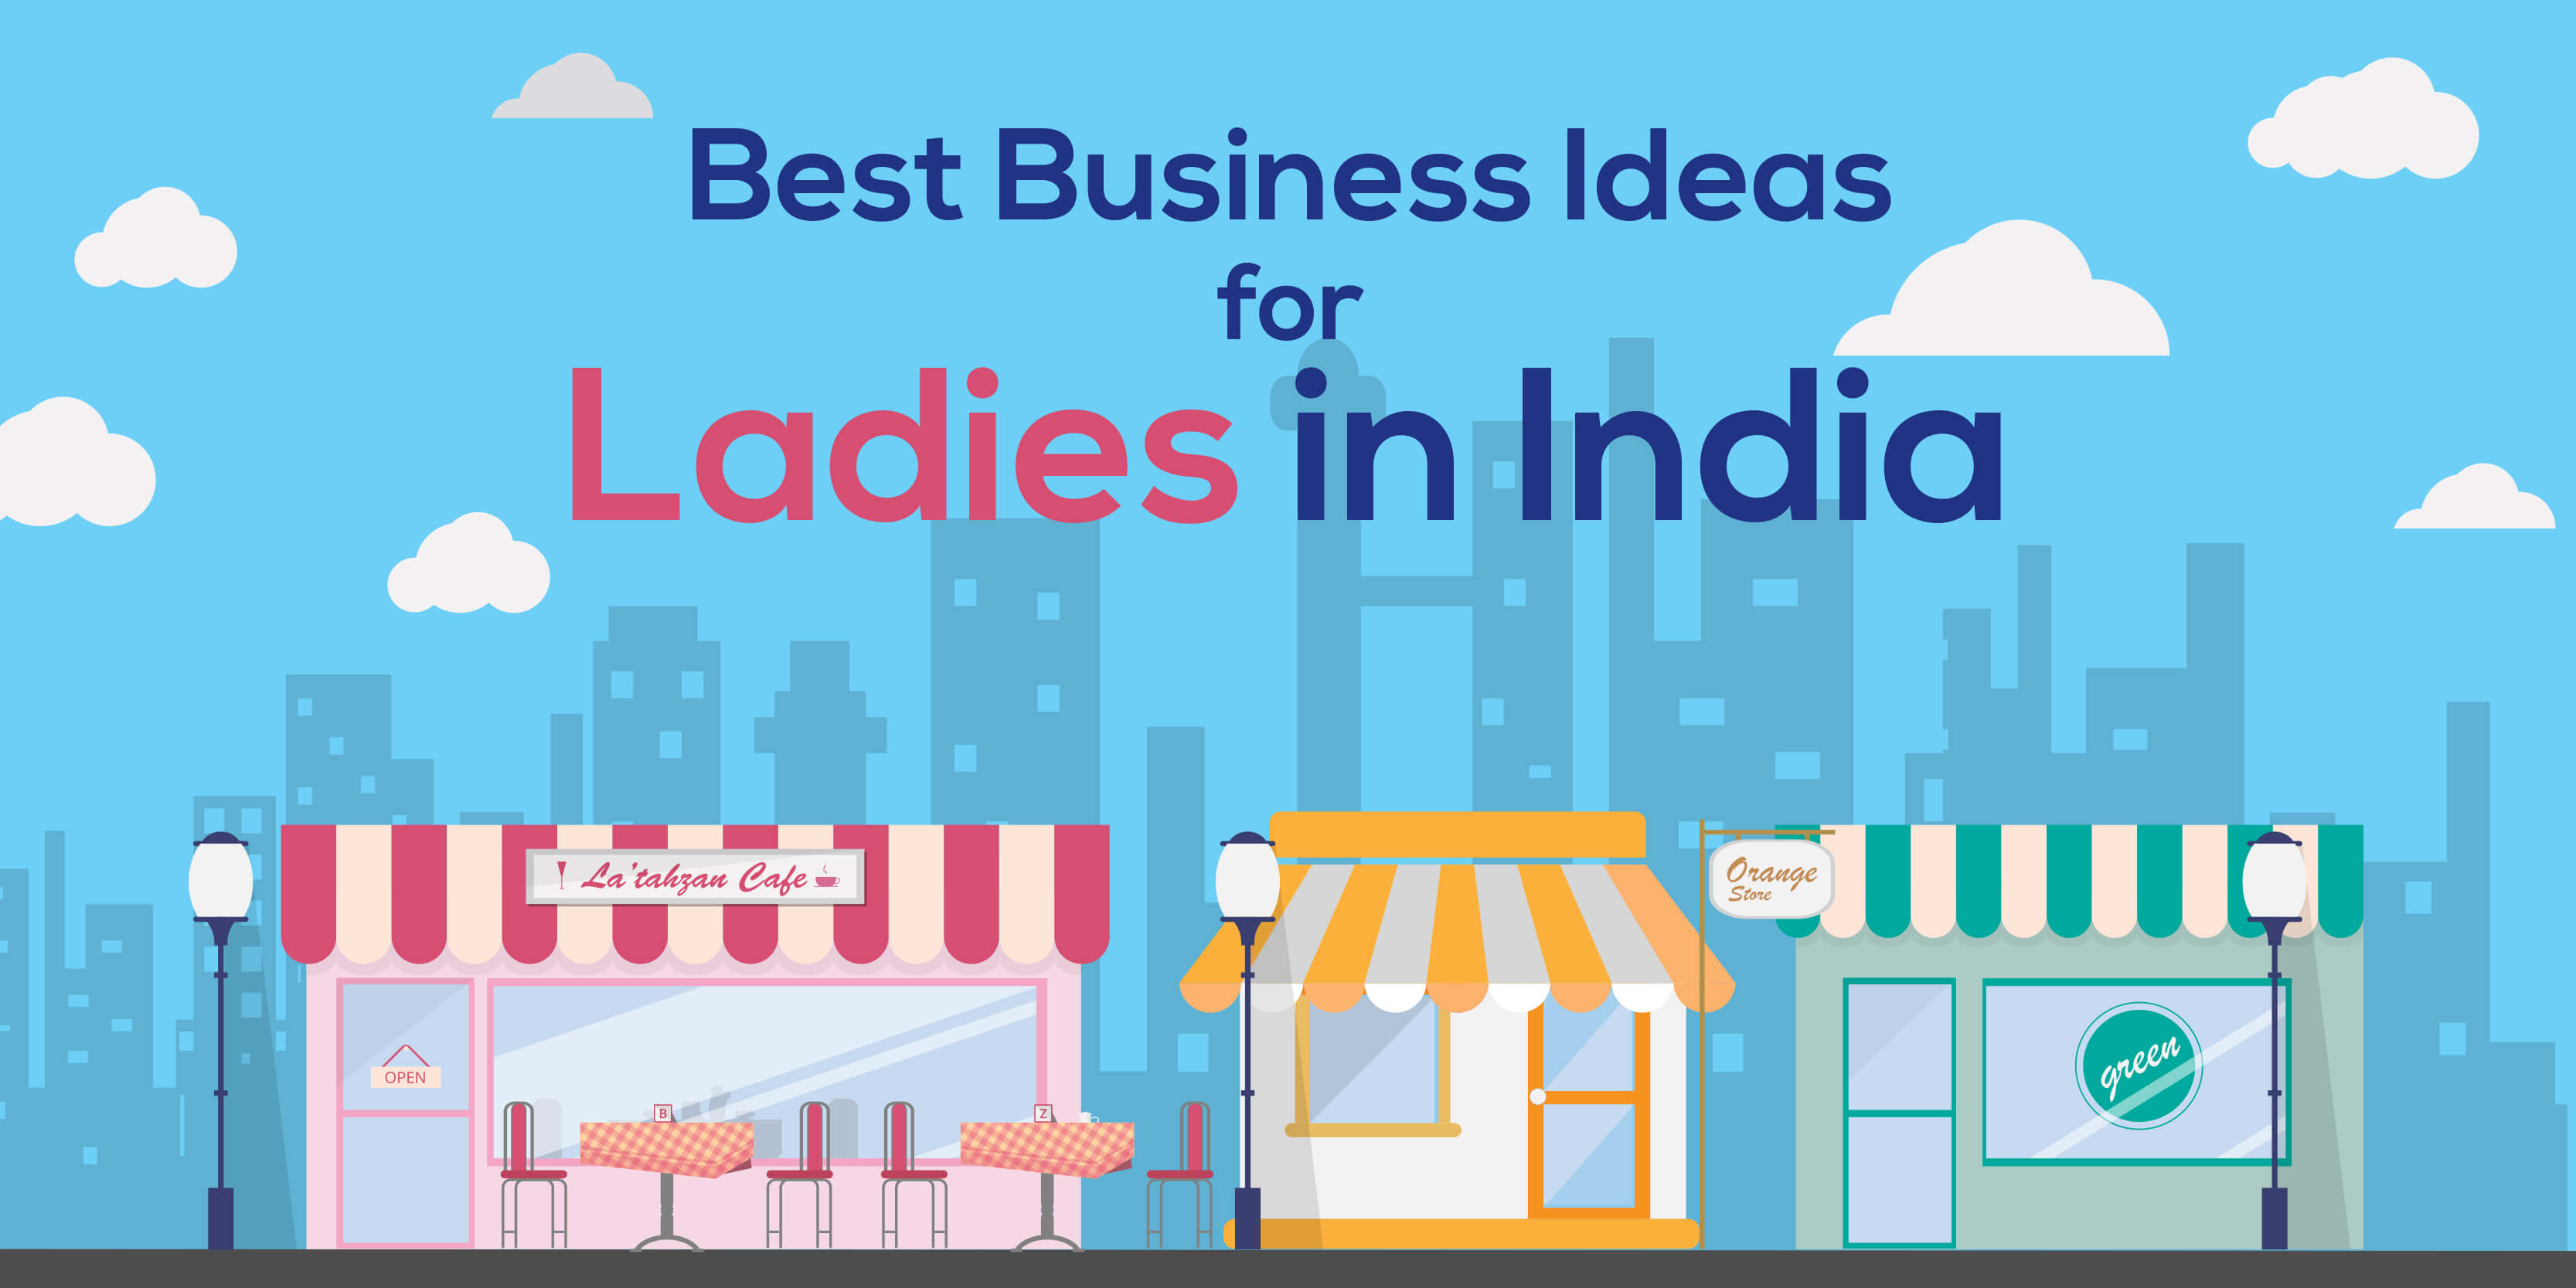 Business ideas for Ladies